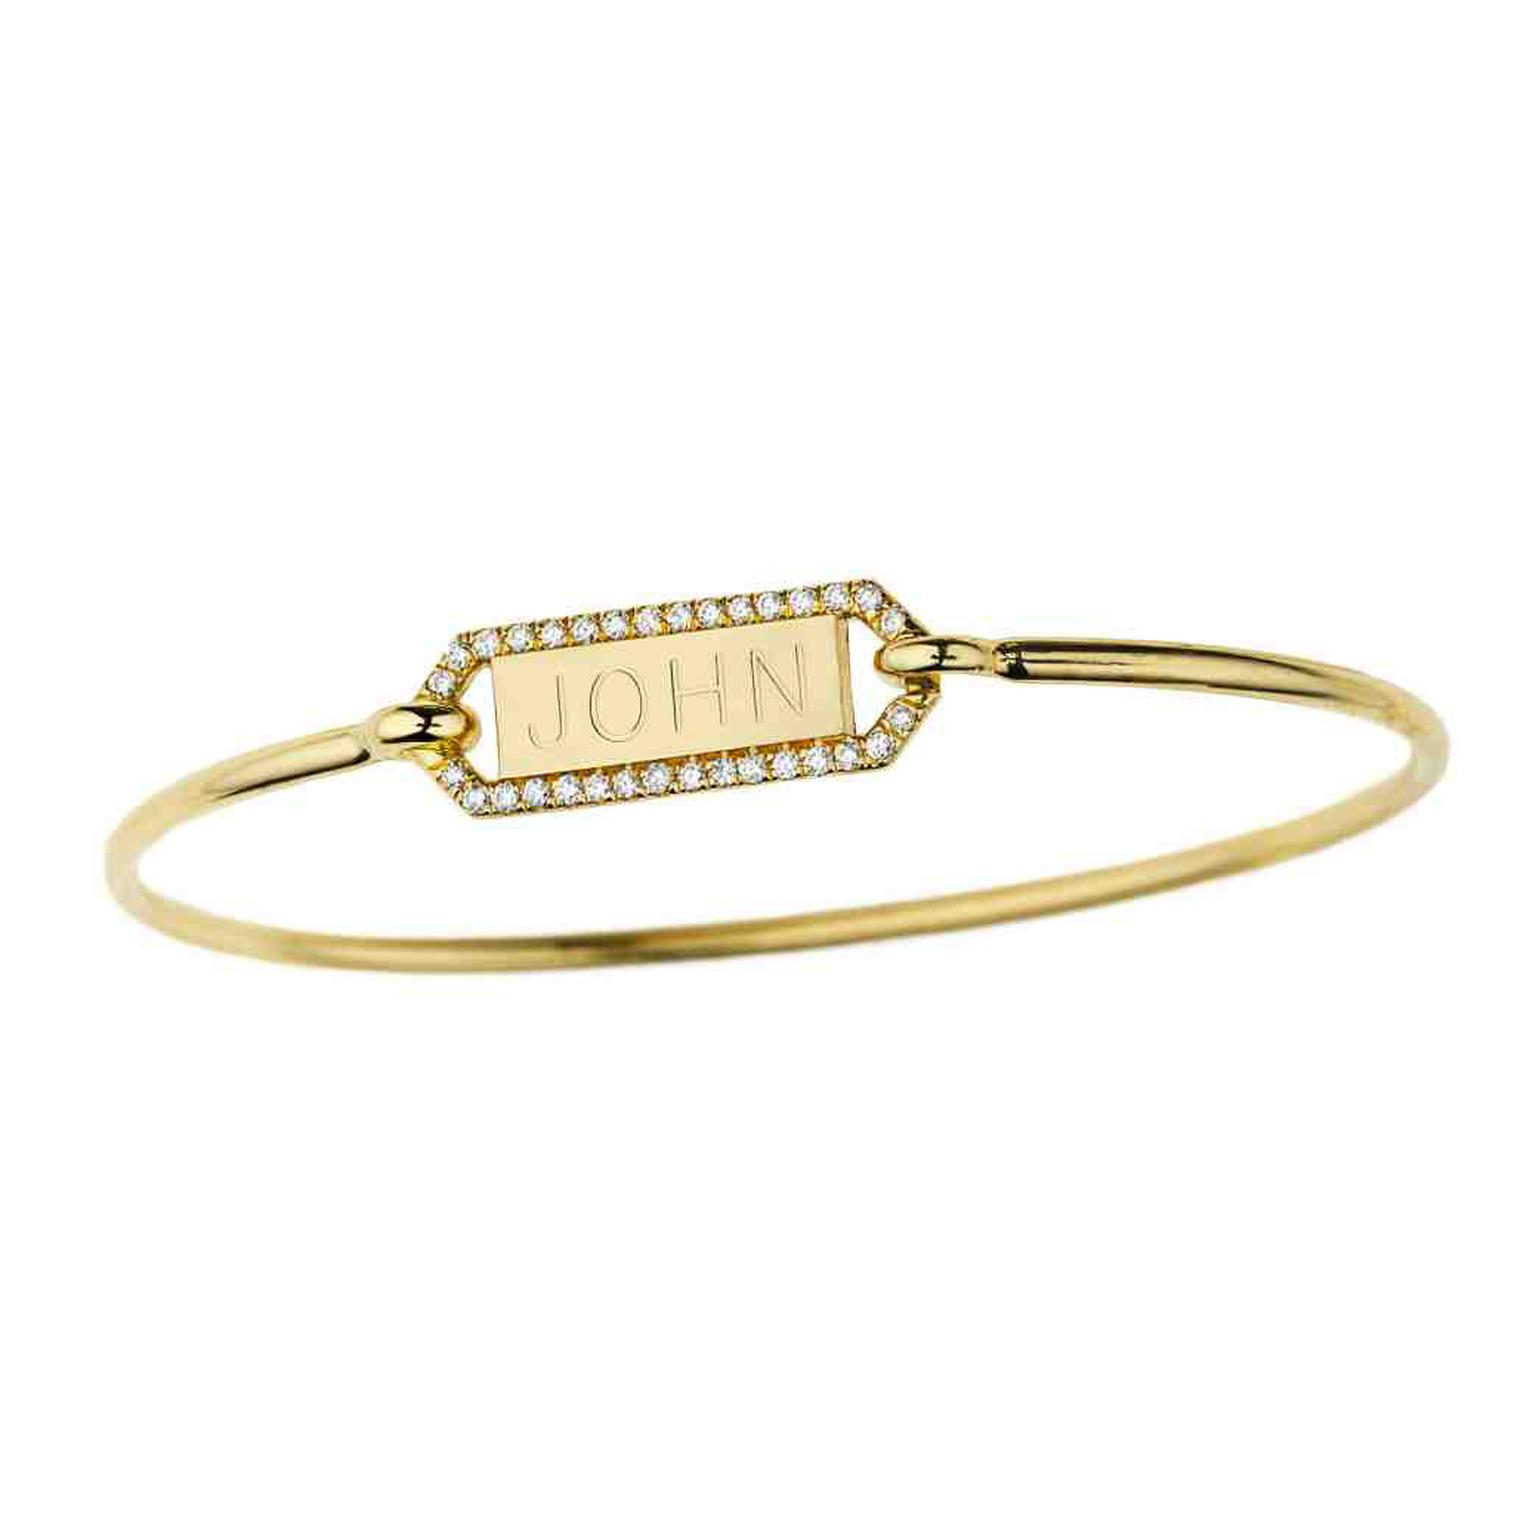 Jemma Wynne's diamond personalised bangle